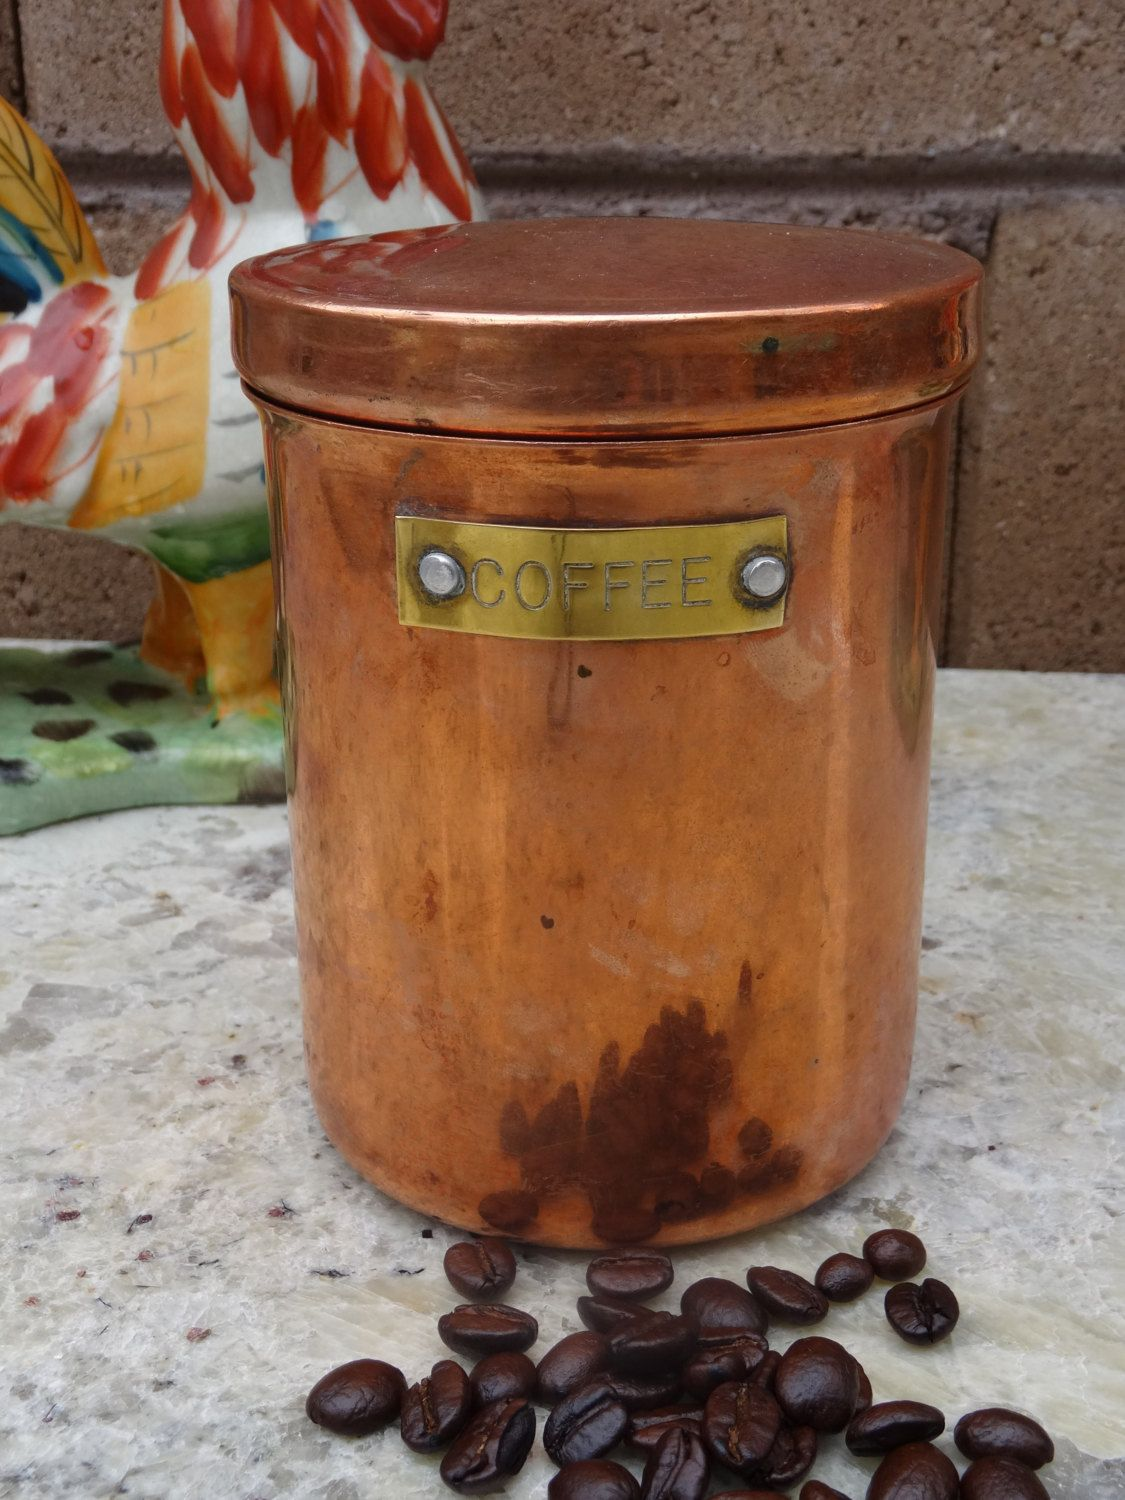 Vintage Copper Coffee Canister Small Italian Kitchen Bean Storage By Tiesofmyfather On Etsy